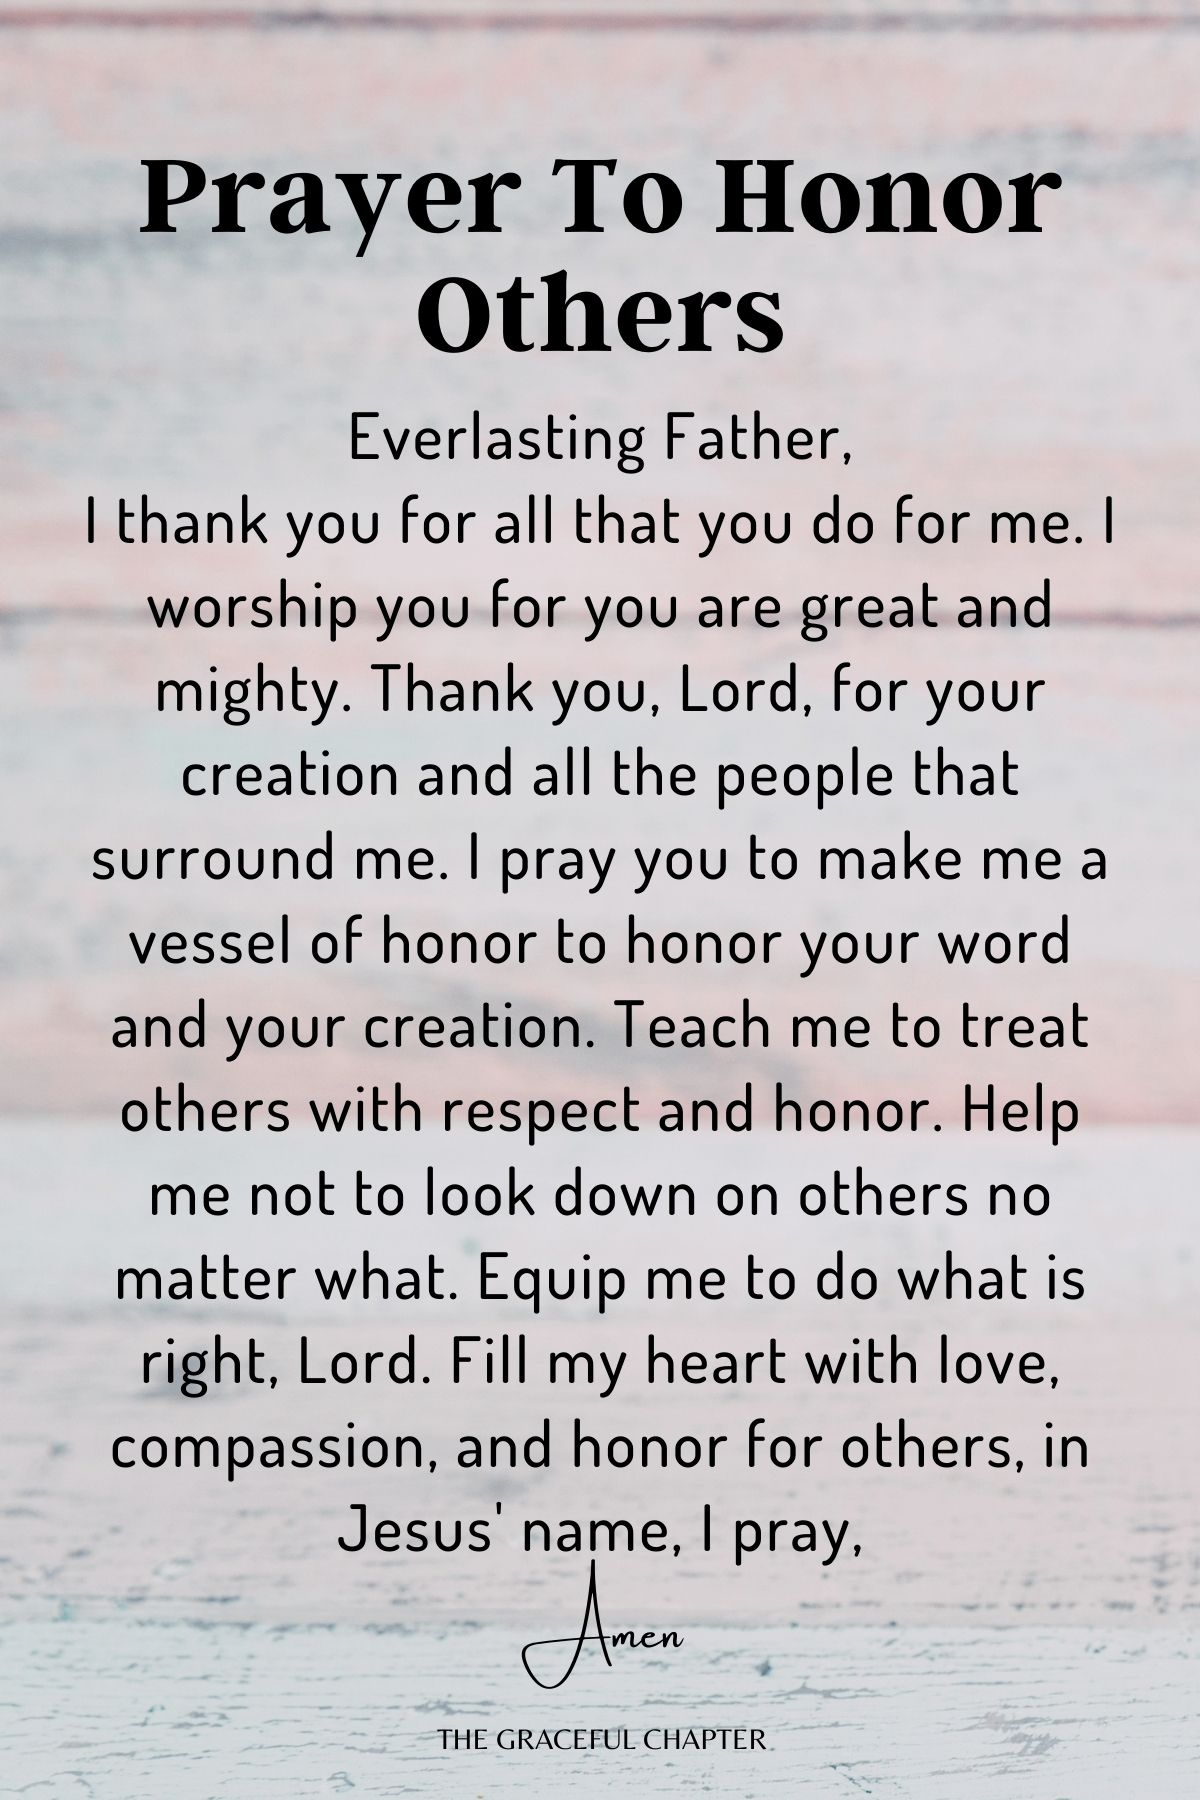 Prayer to honor others